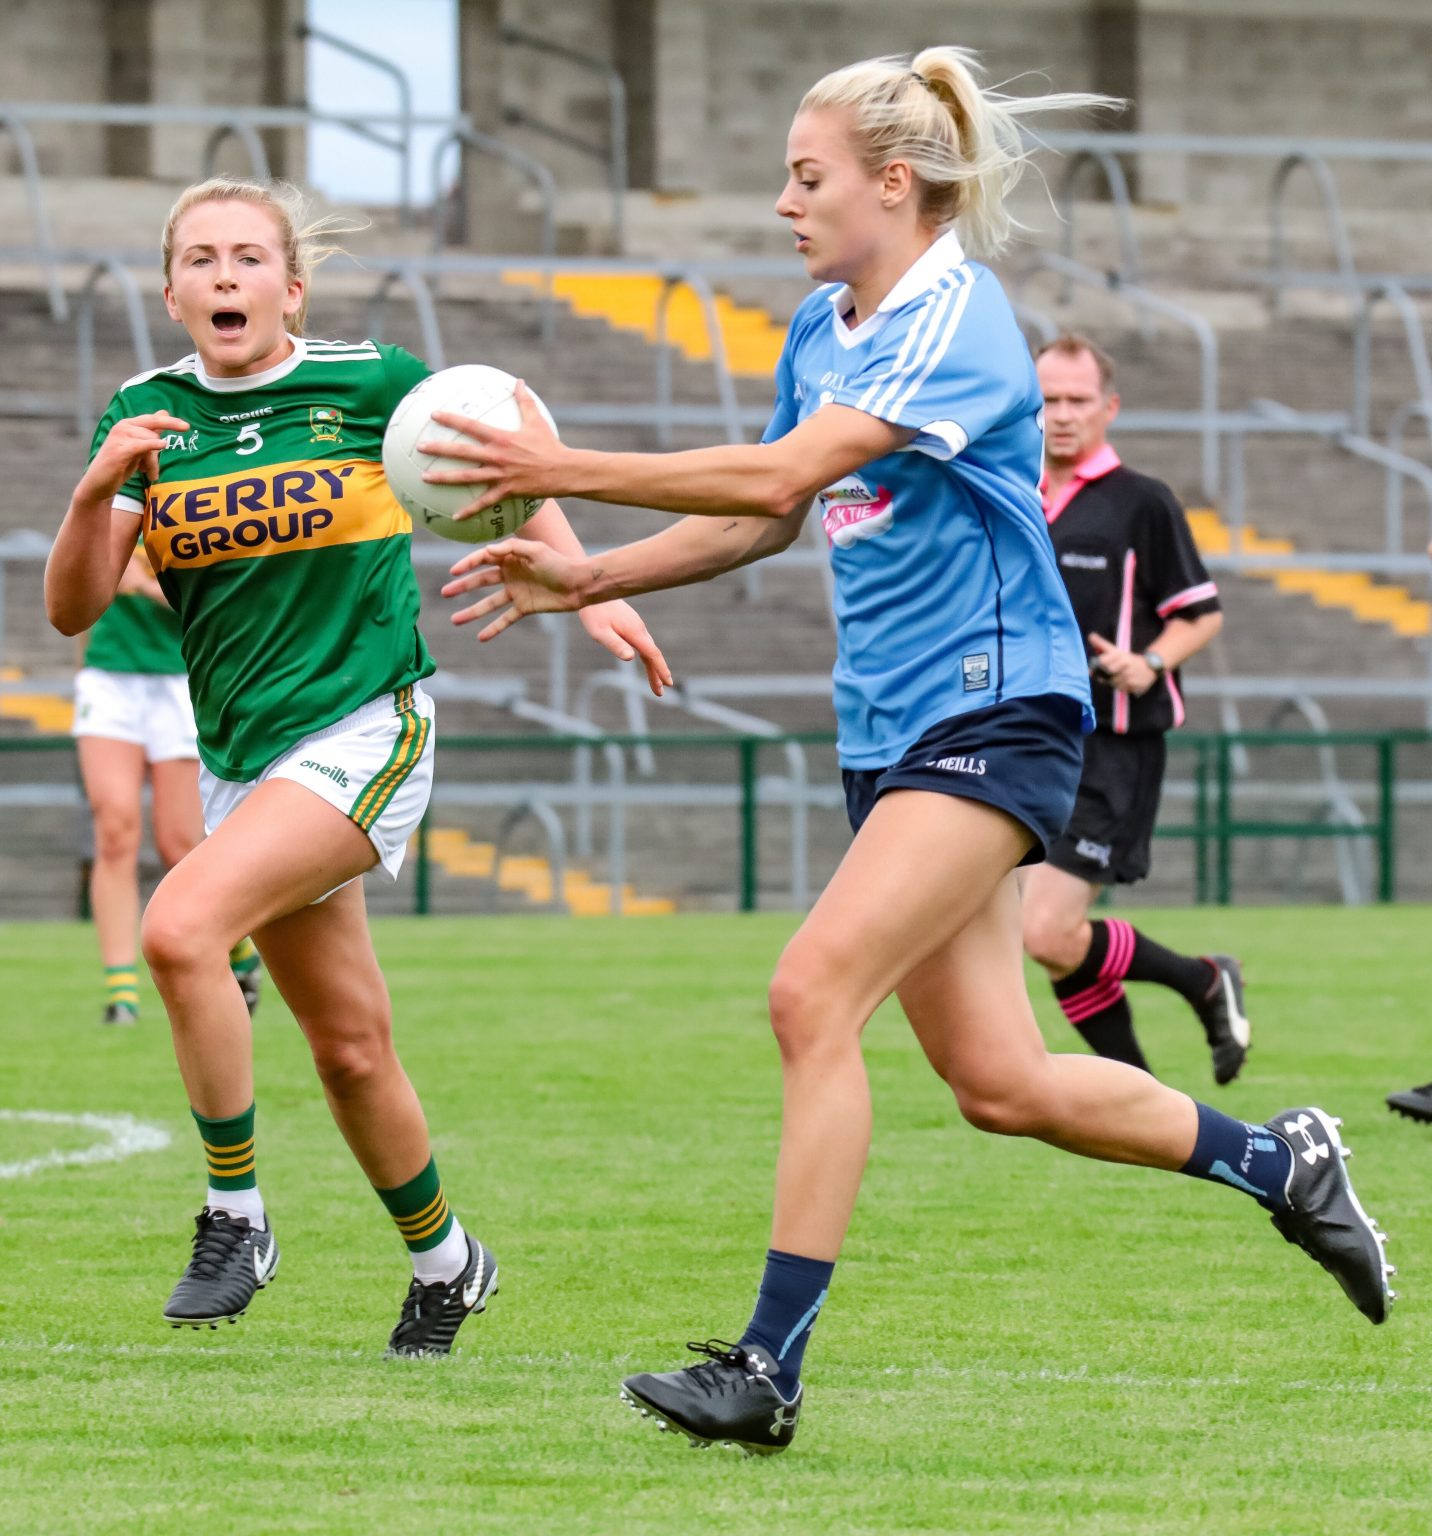 A Dublin Ladies footballer in a sky blue jersey and navy shorts runs at the Kerry defence